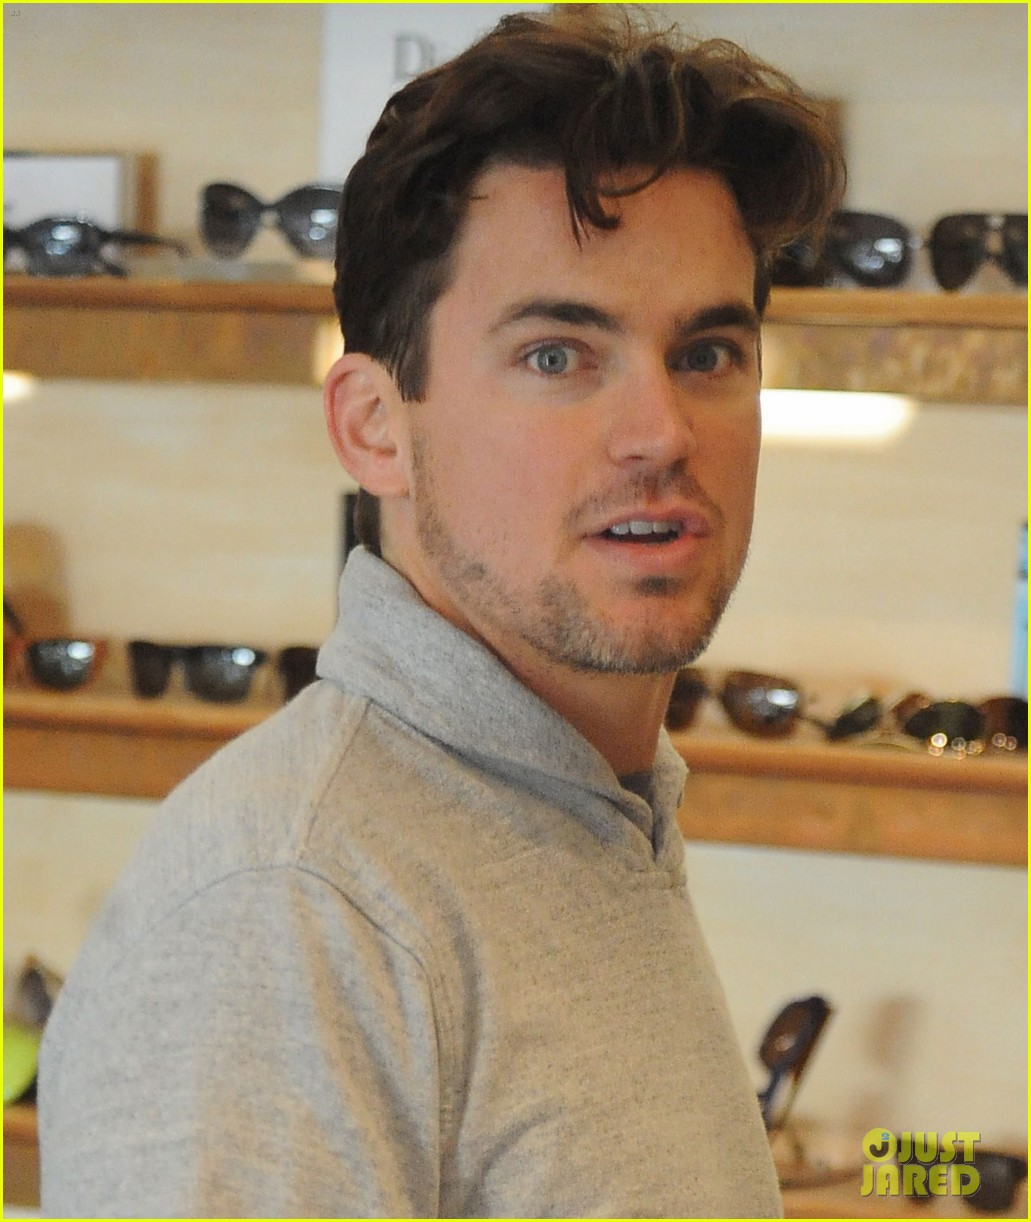 [Image: matt-bomer-sunglasses-shopping-04.jpg]